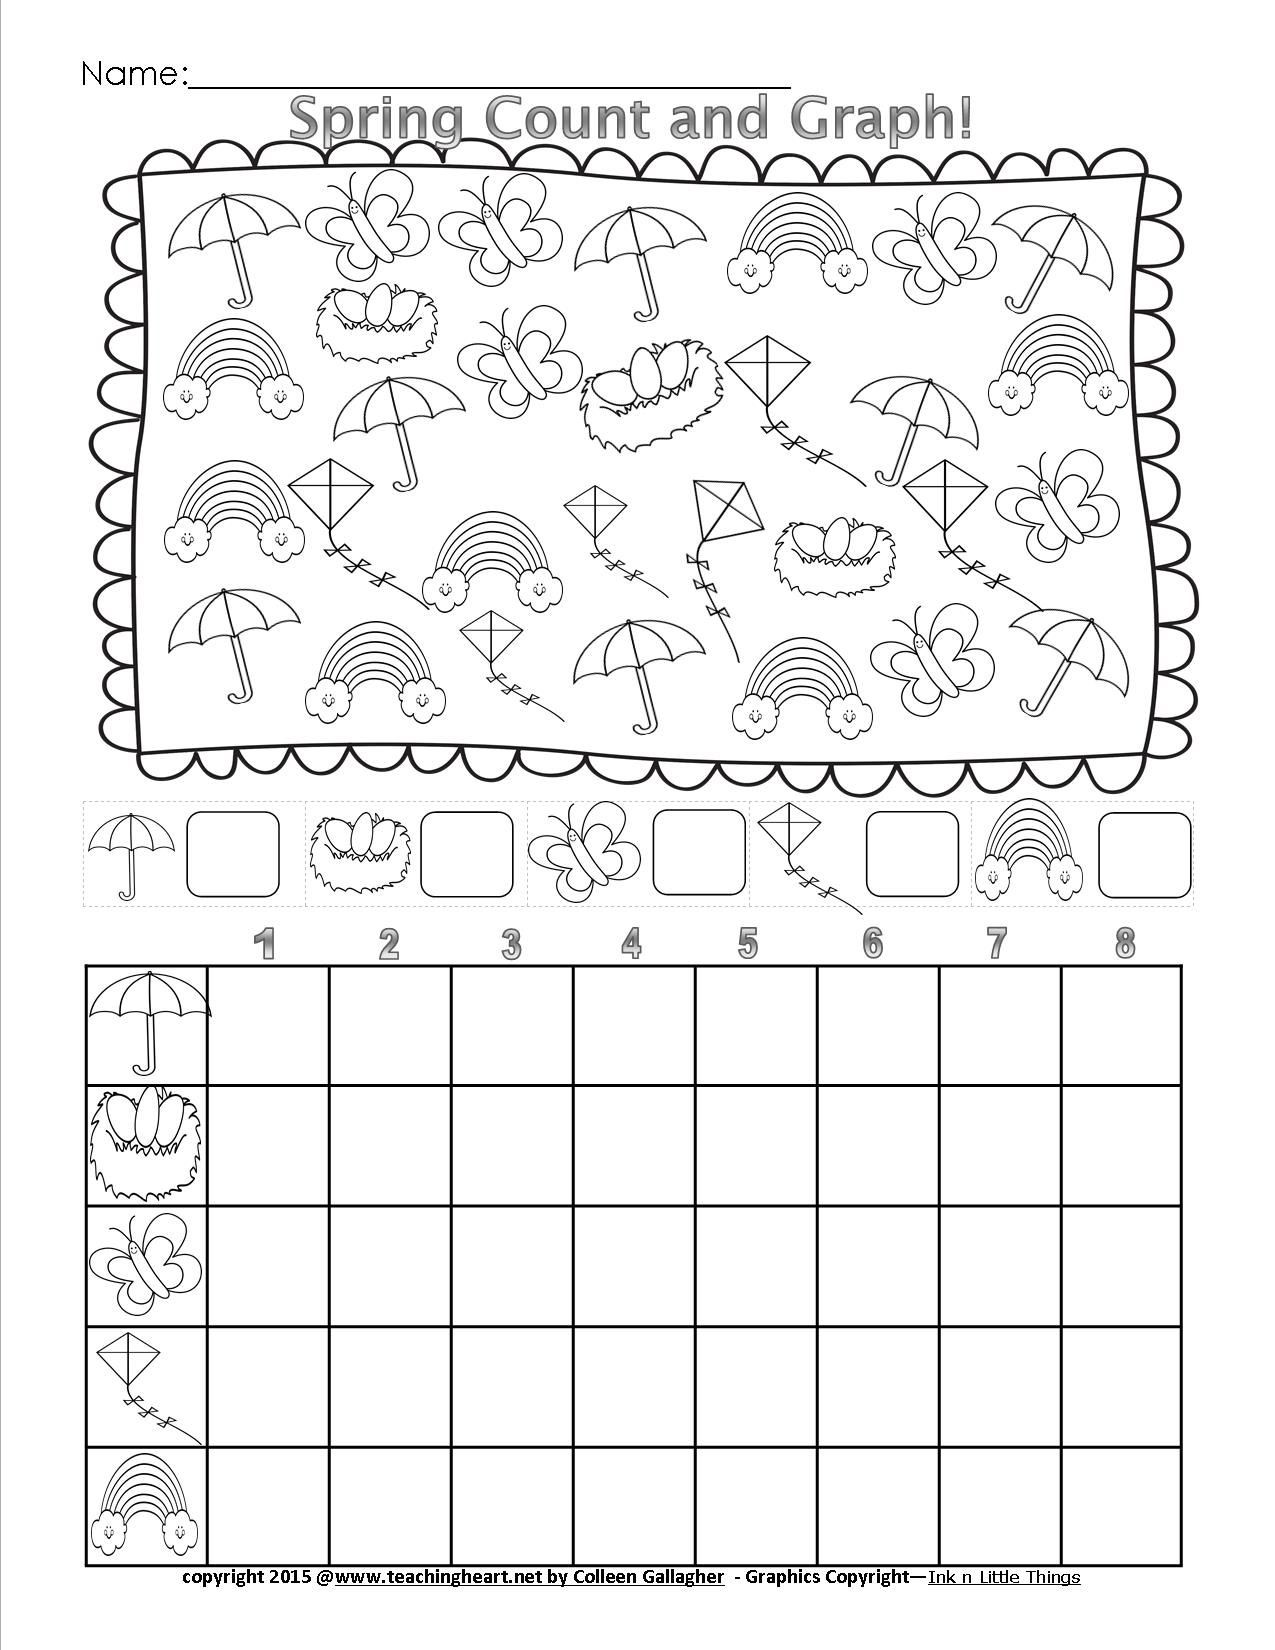 Graphing Worksheets for First Grade Spring Count and Graph Free Teaching Heart Blog